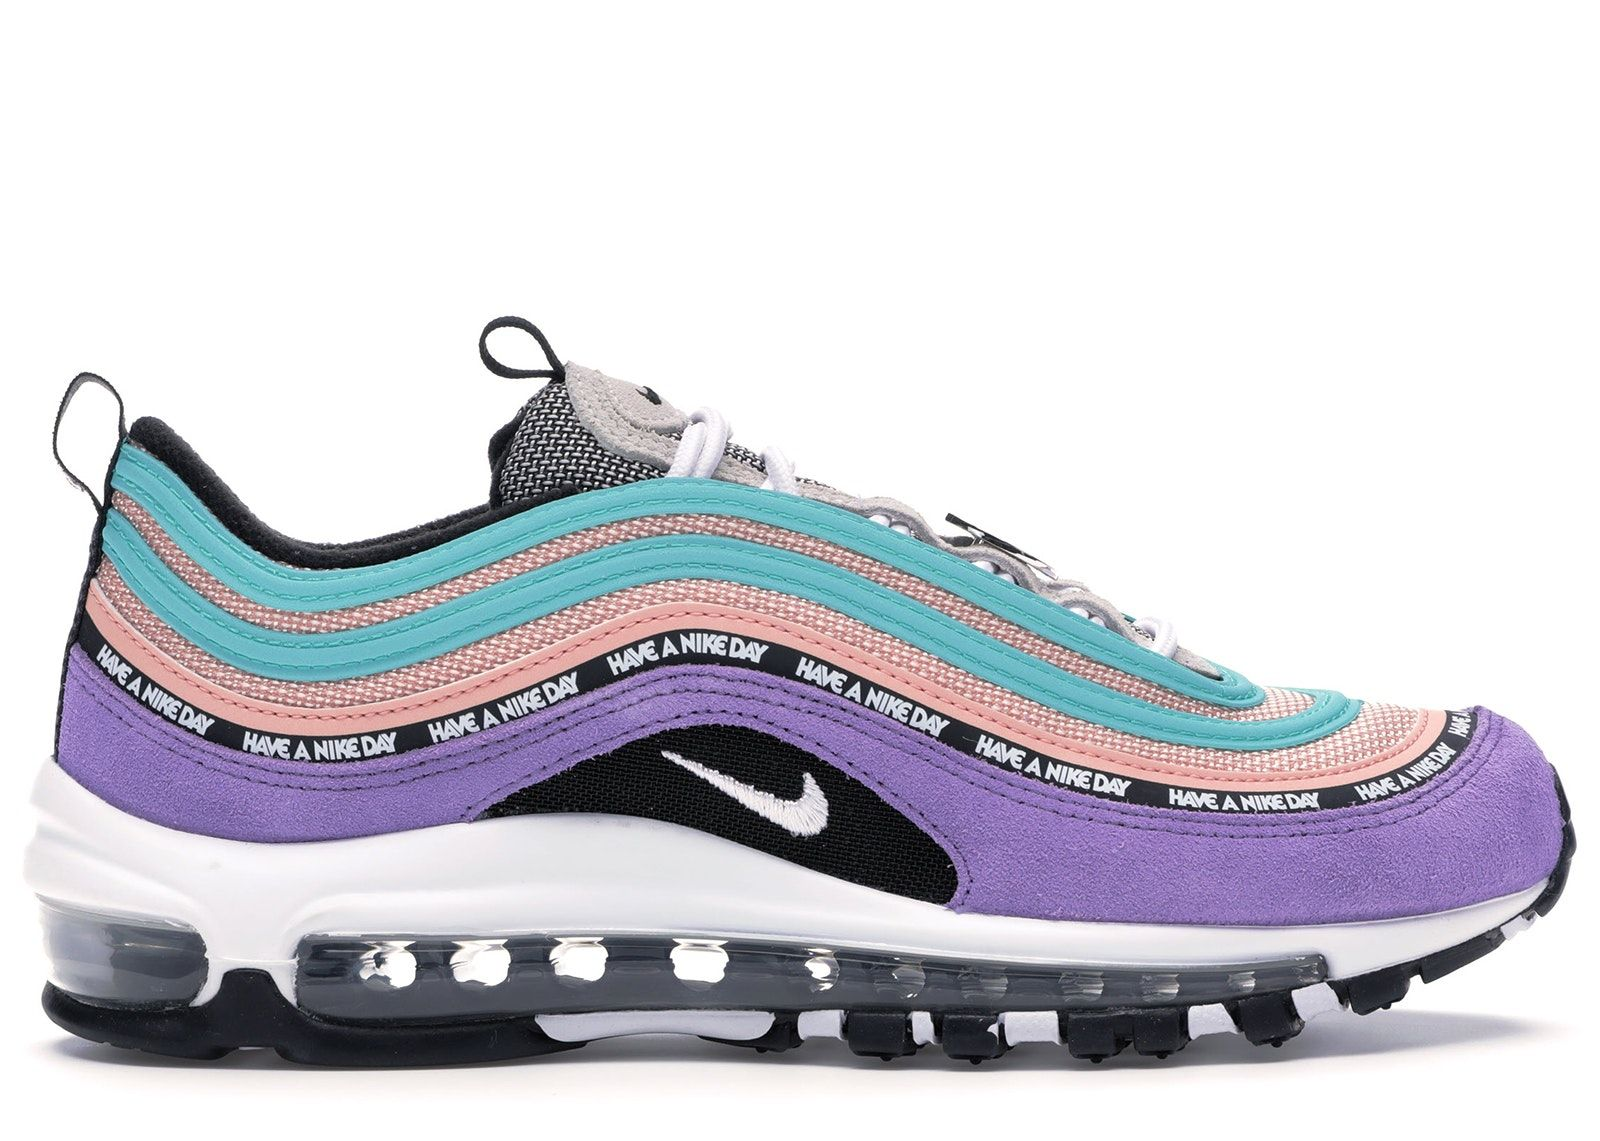 Nike Air Max 97 Have A Nike Day Gs In 2020 Nike Air Max 97 Nike Air Max Nike Air